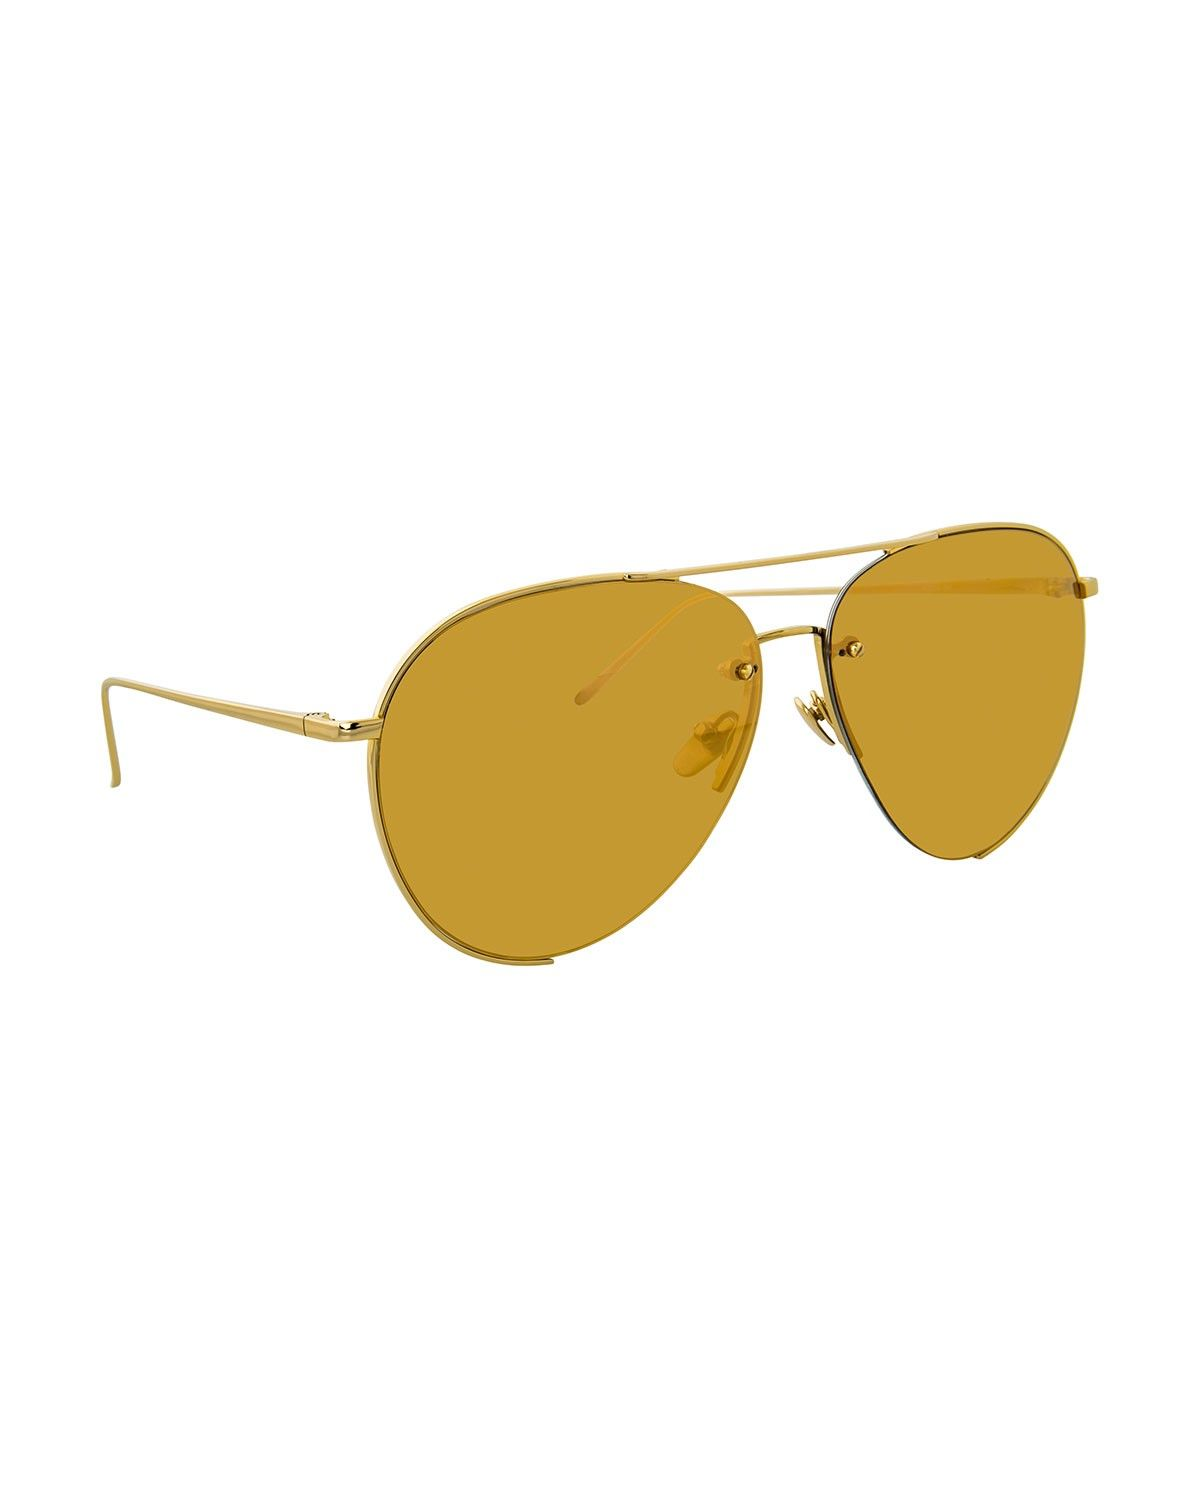 bee007e7e10 LINDA FARROW Semi-Rimless Mirrored Aviator Sunglasses.  lindafarrow ...